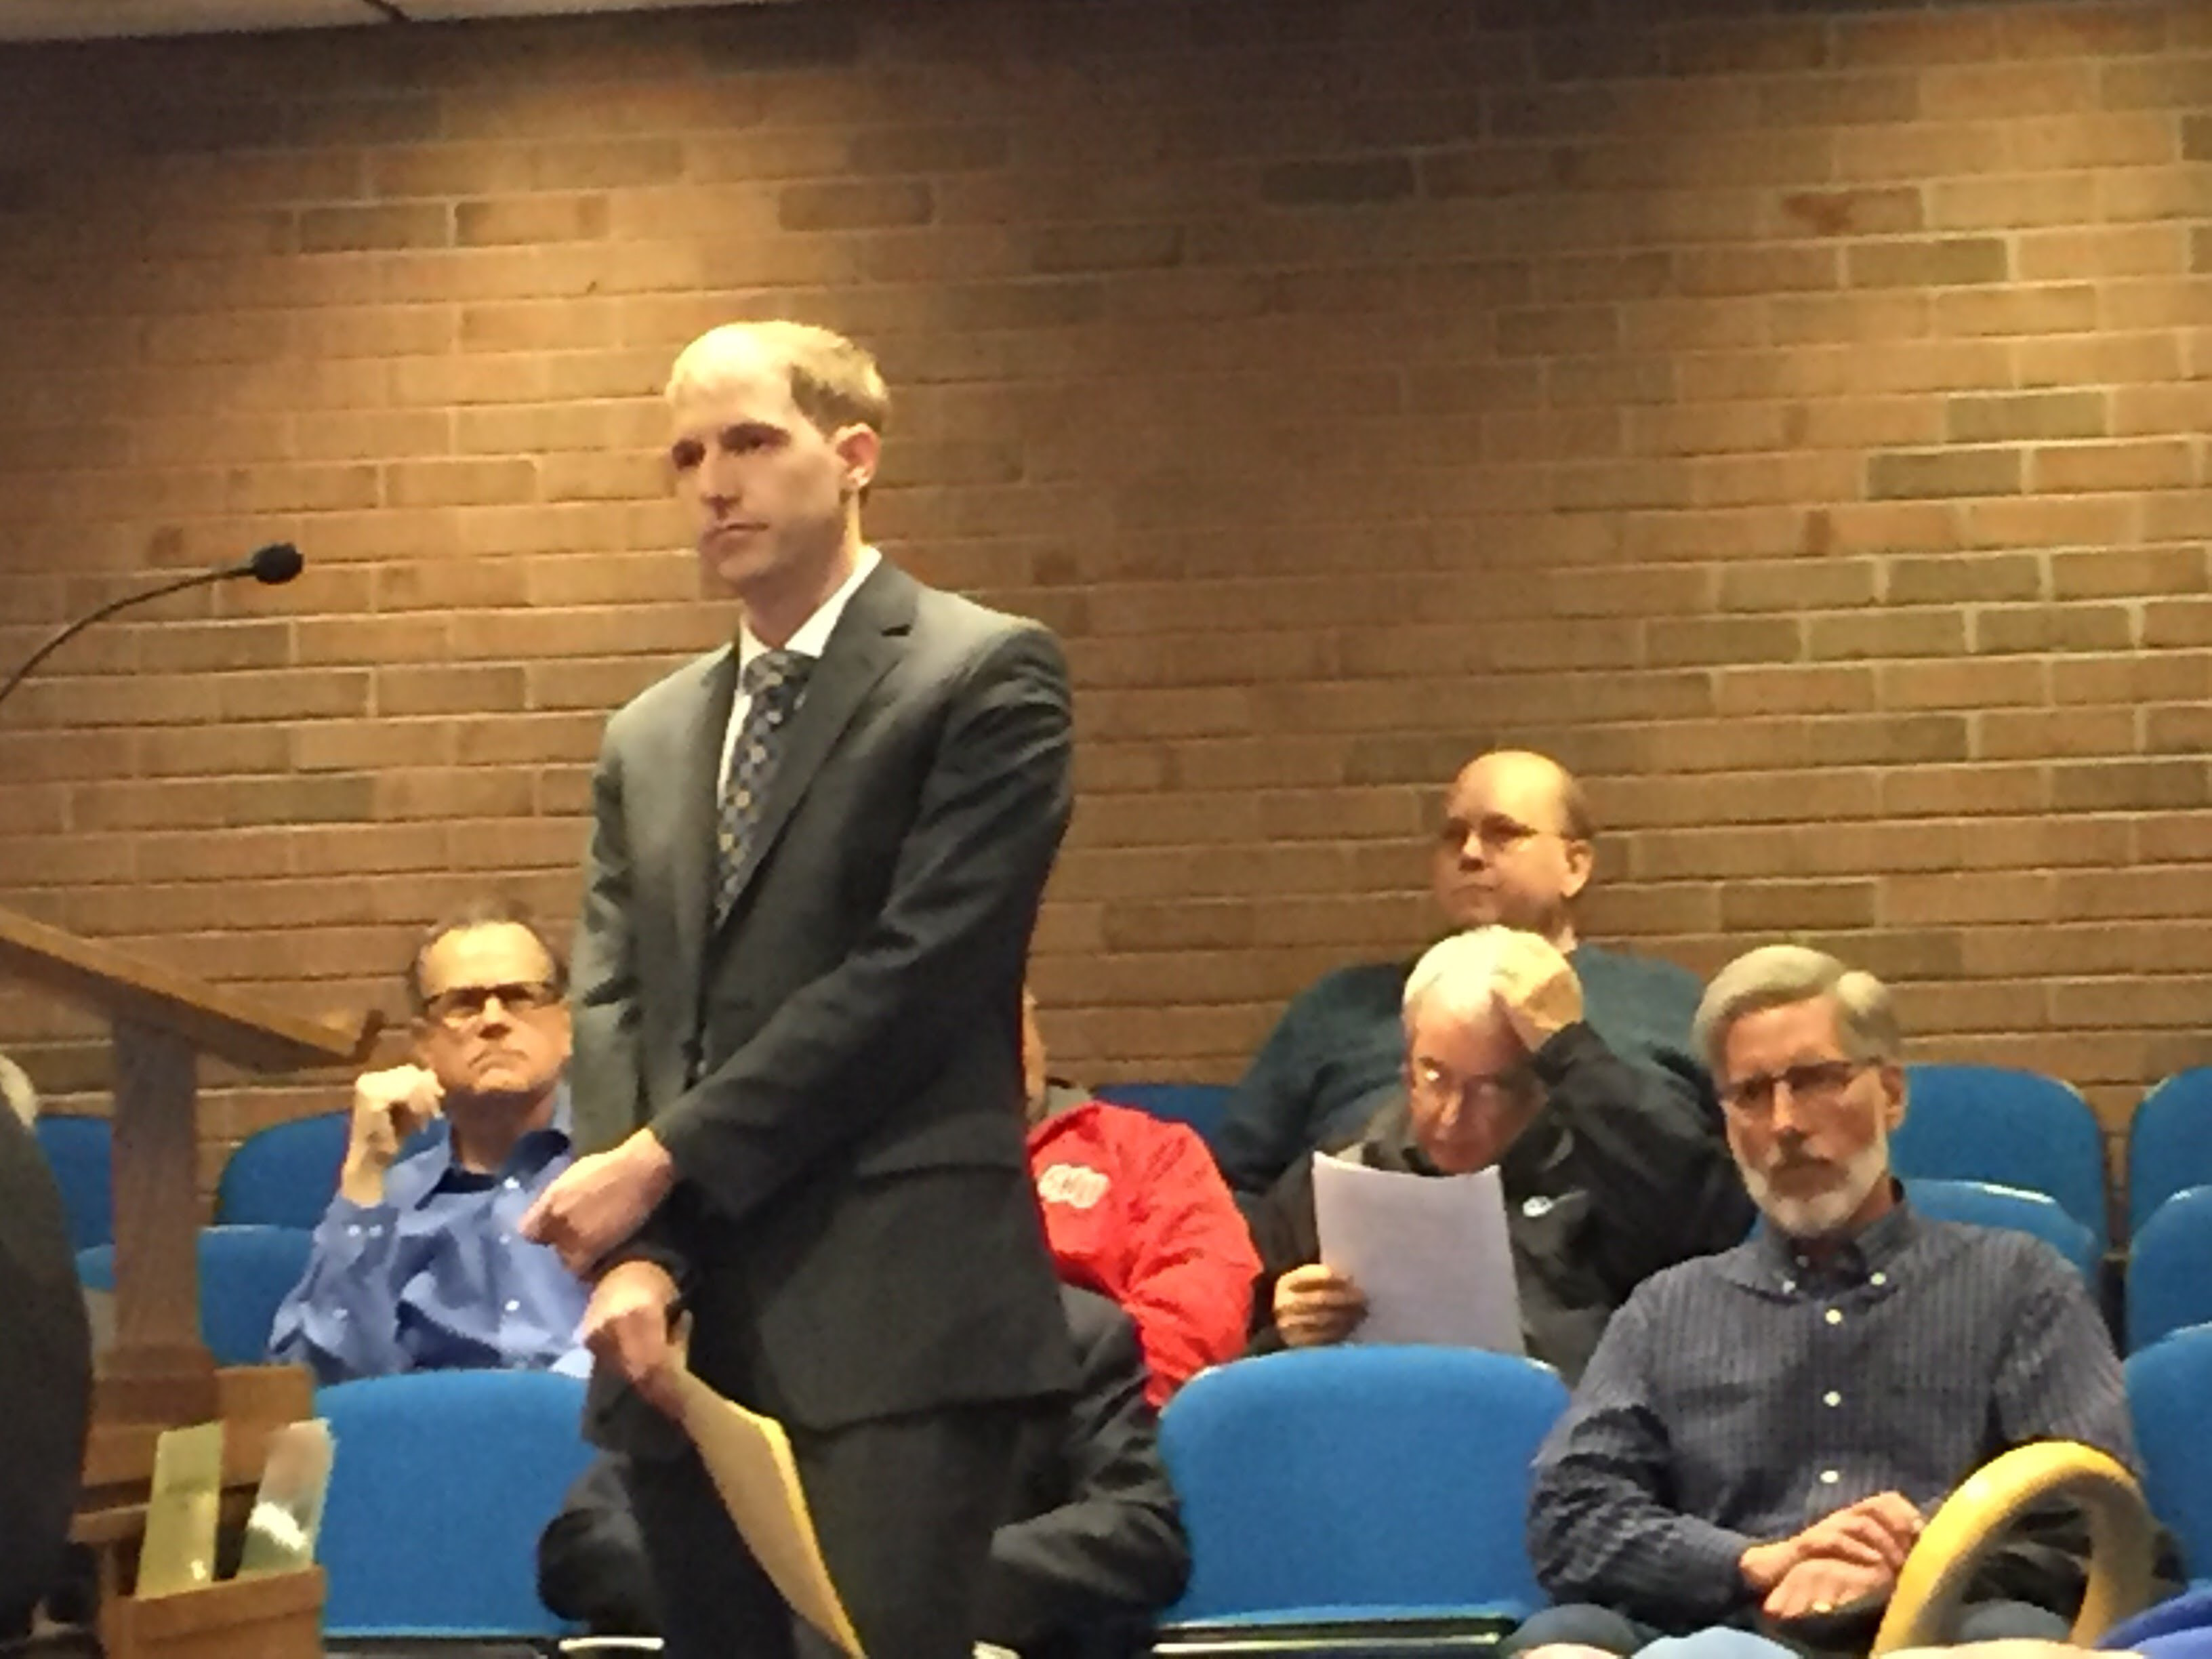 FILE: Tim Malone, CROG, spoke at a recent Town Council meeting. Plainville and Southington study postpones winter meetings to discuss rail options for trail connection. |Ashley Kus, The Plainville Citizen.